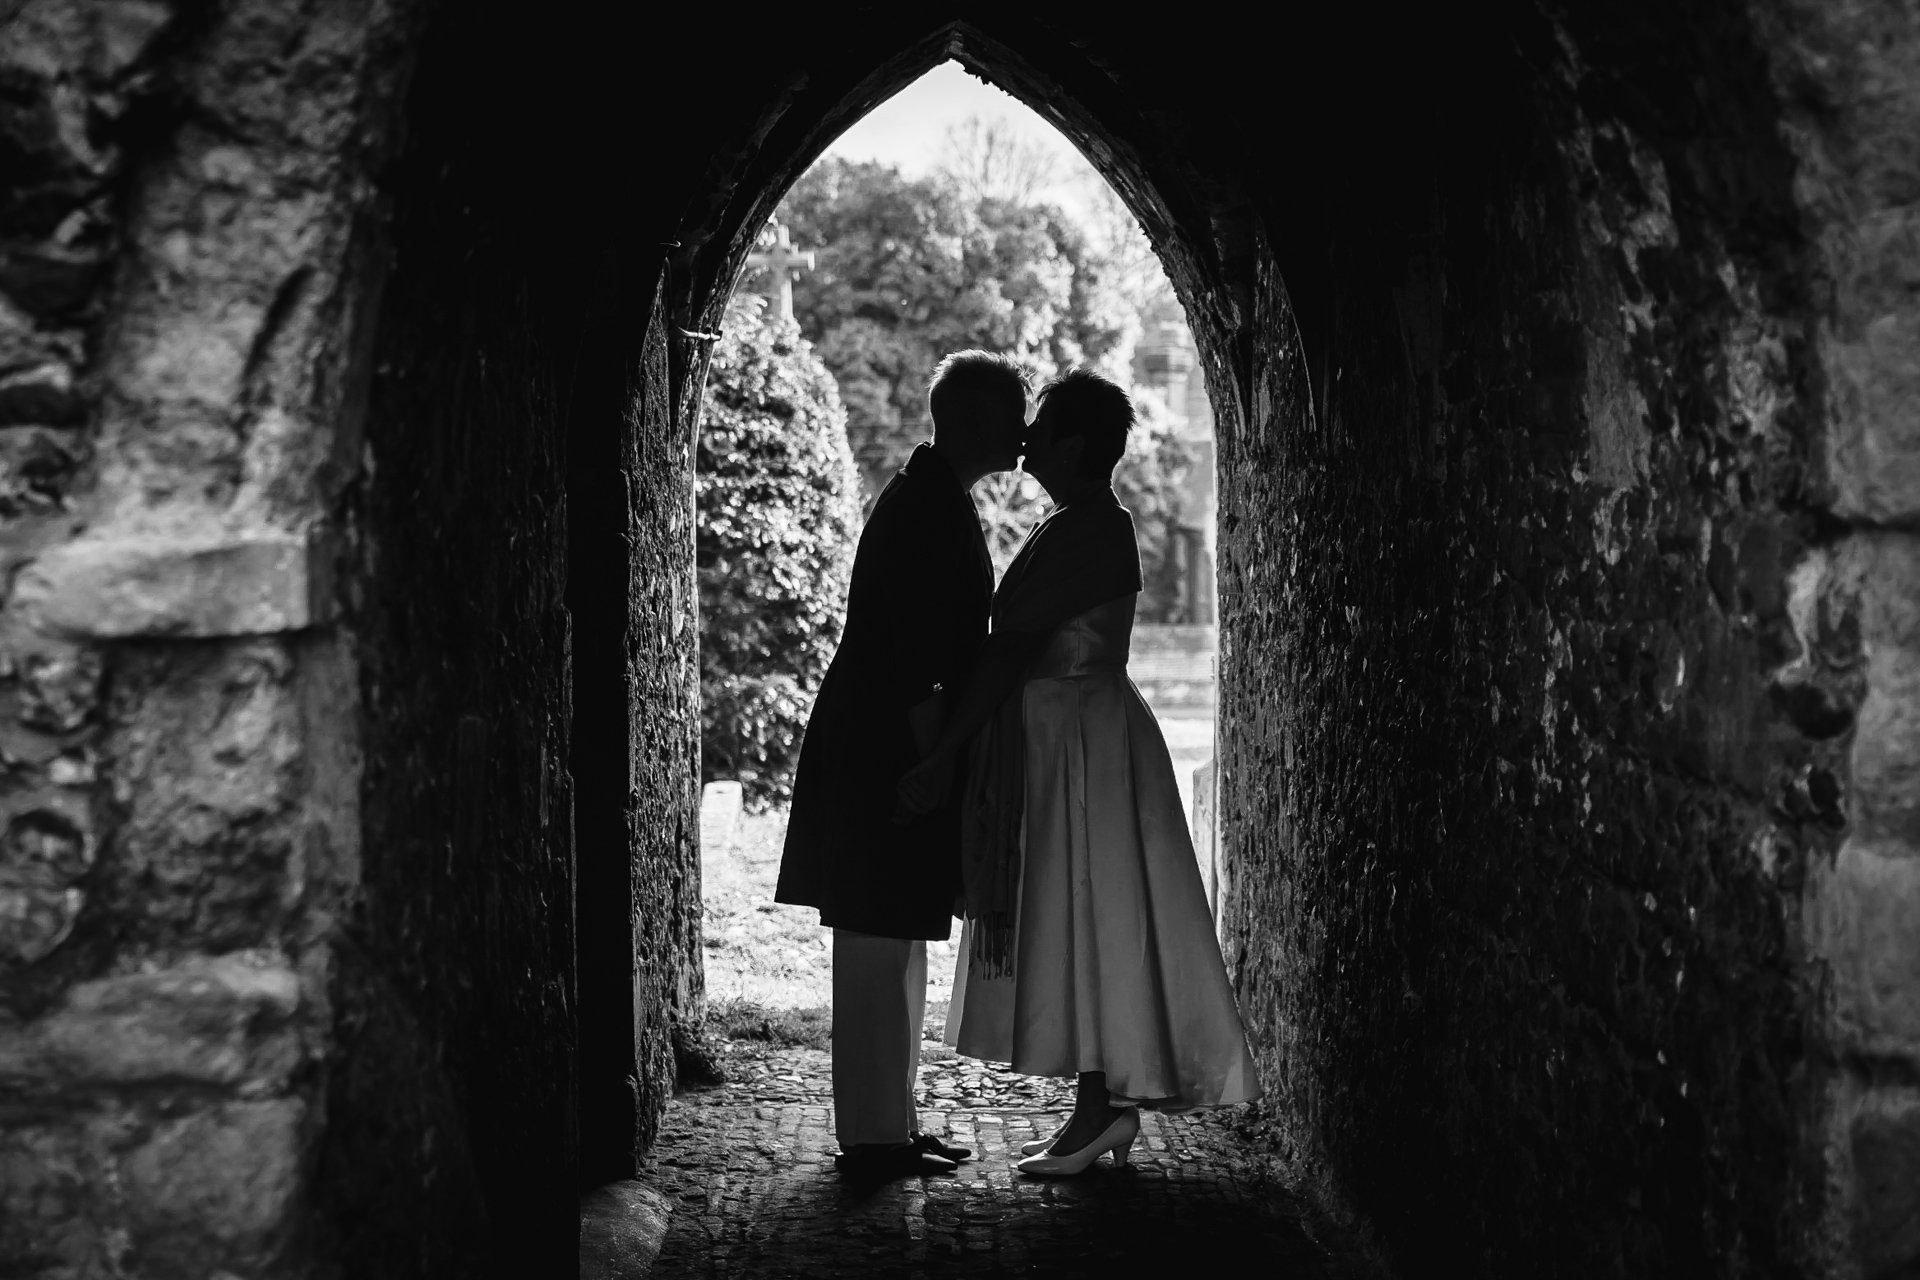 Silhouette of two brides kissing under an arch during bridal portraits